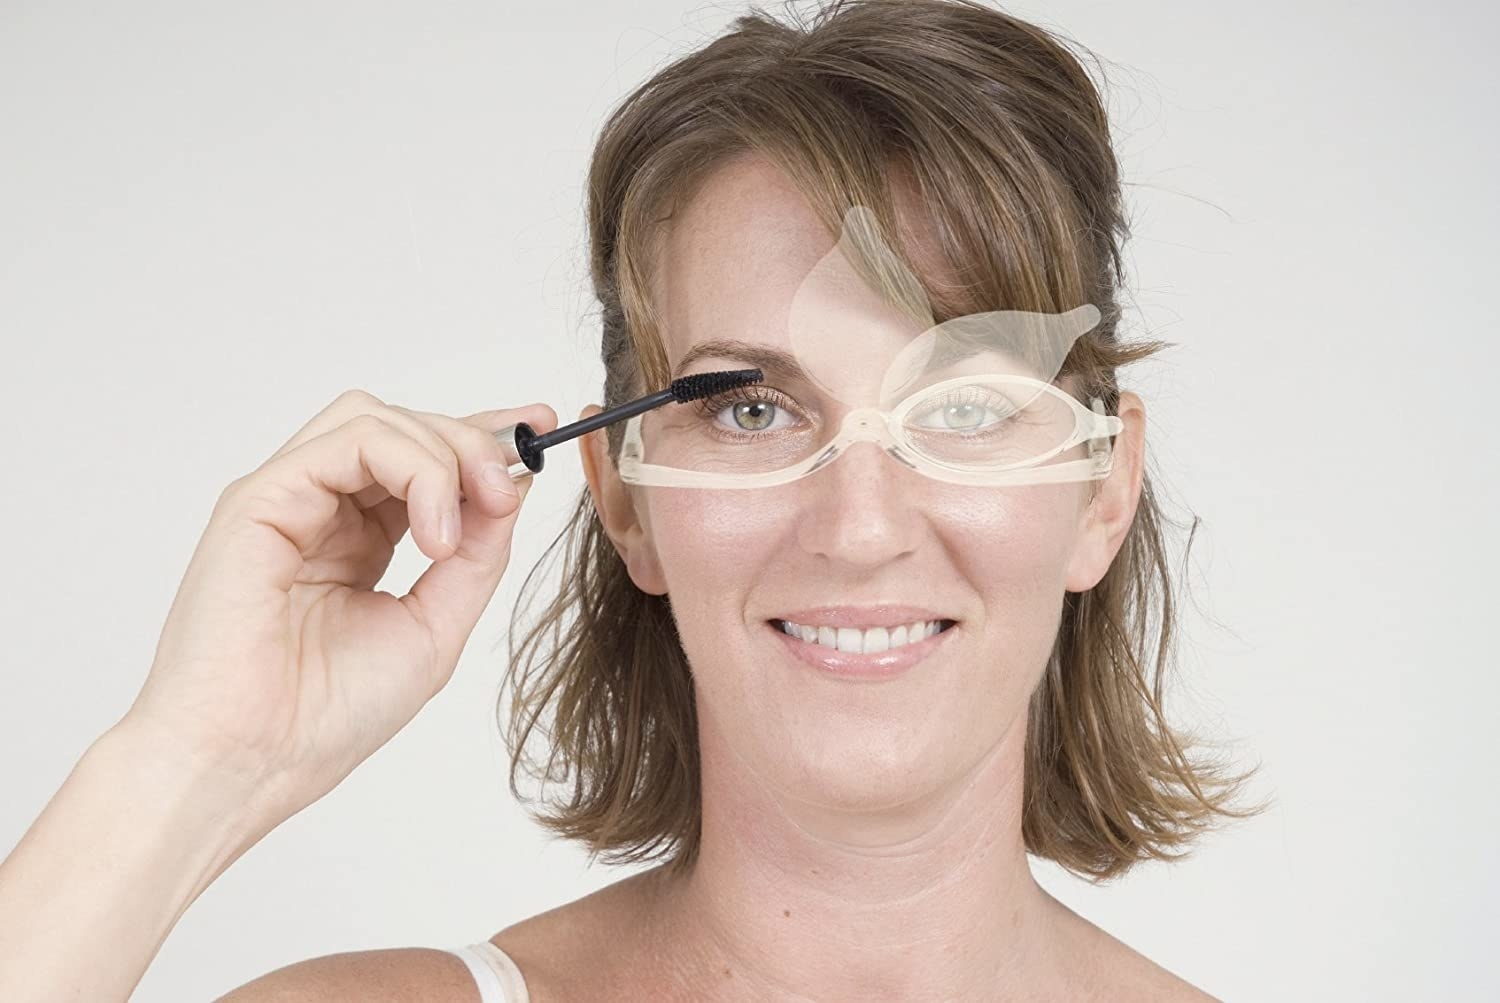 A person applies makeup while wearing the flip-lens glasses